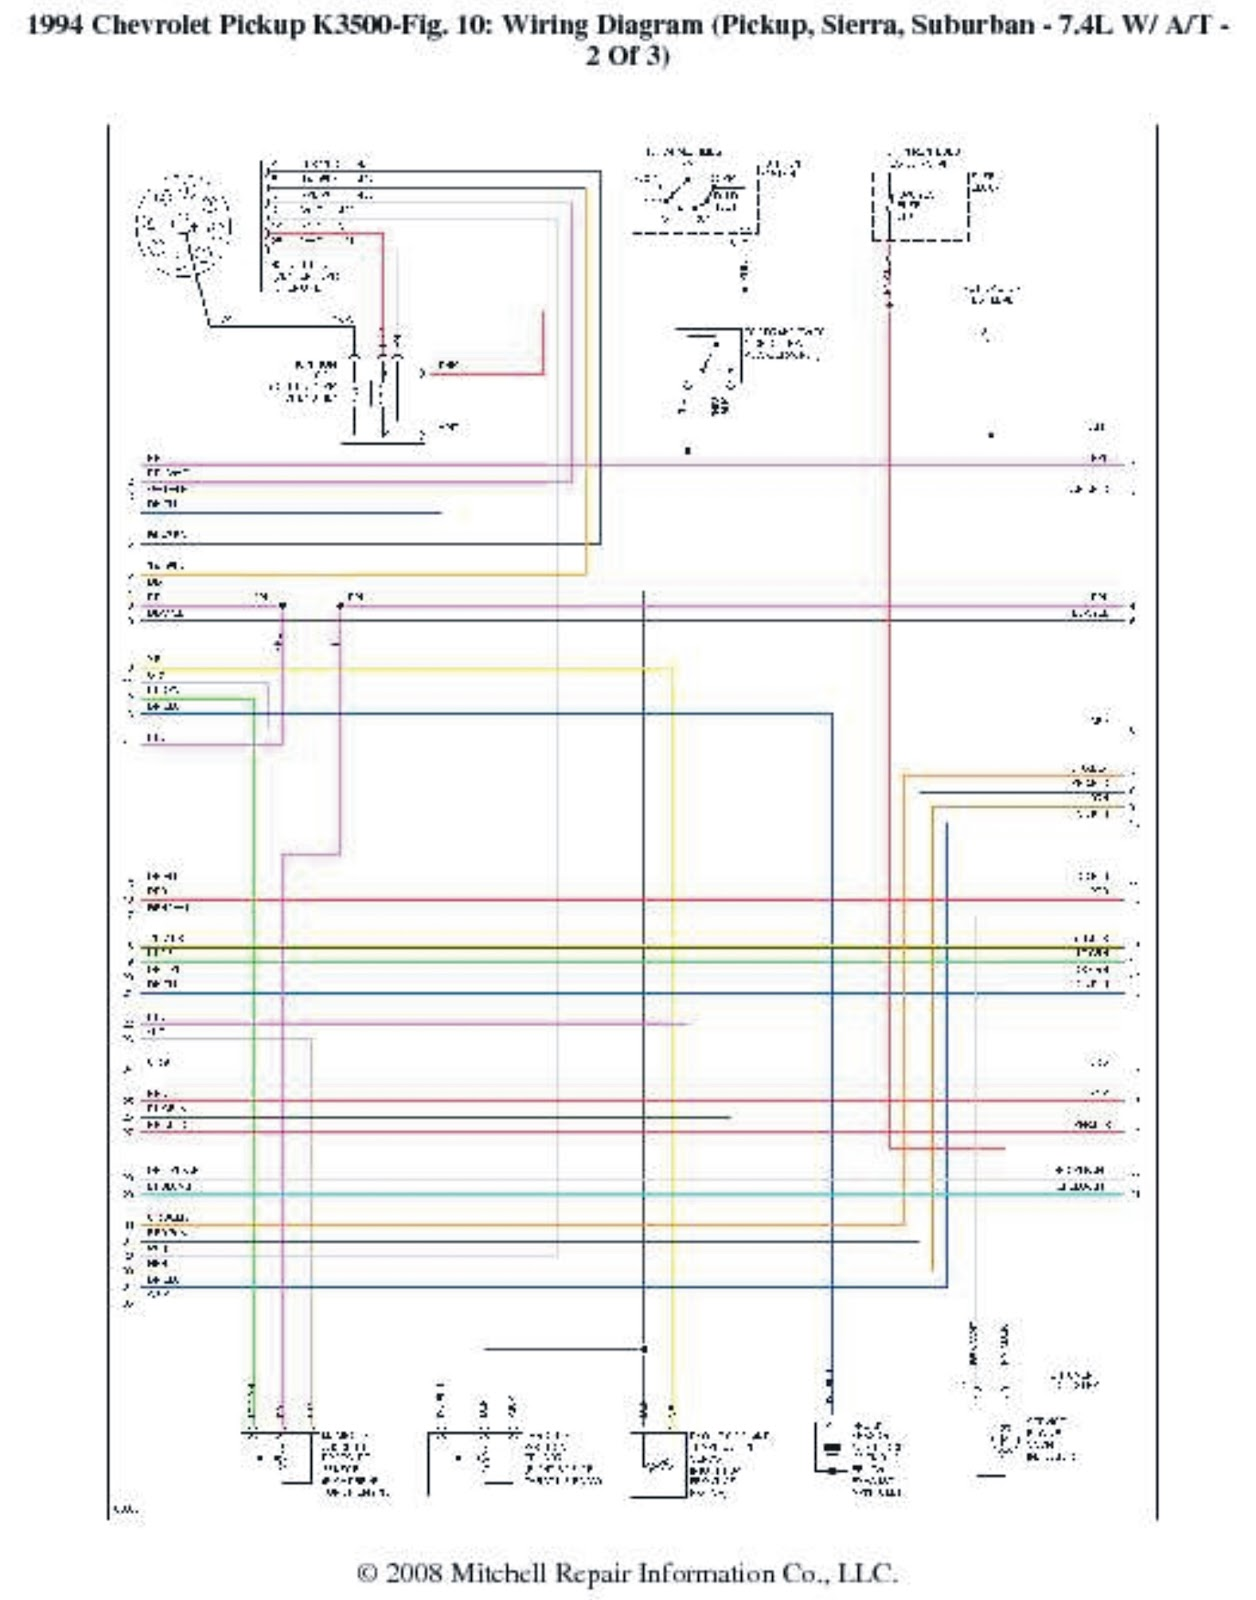 94 Chevy 1500 Wiring Diagram Glands In The Neck And Throat Pickup Tail Light Get Free Image